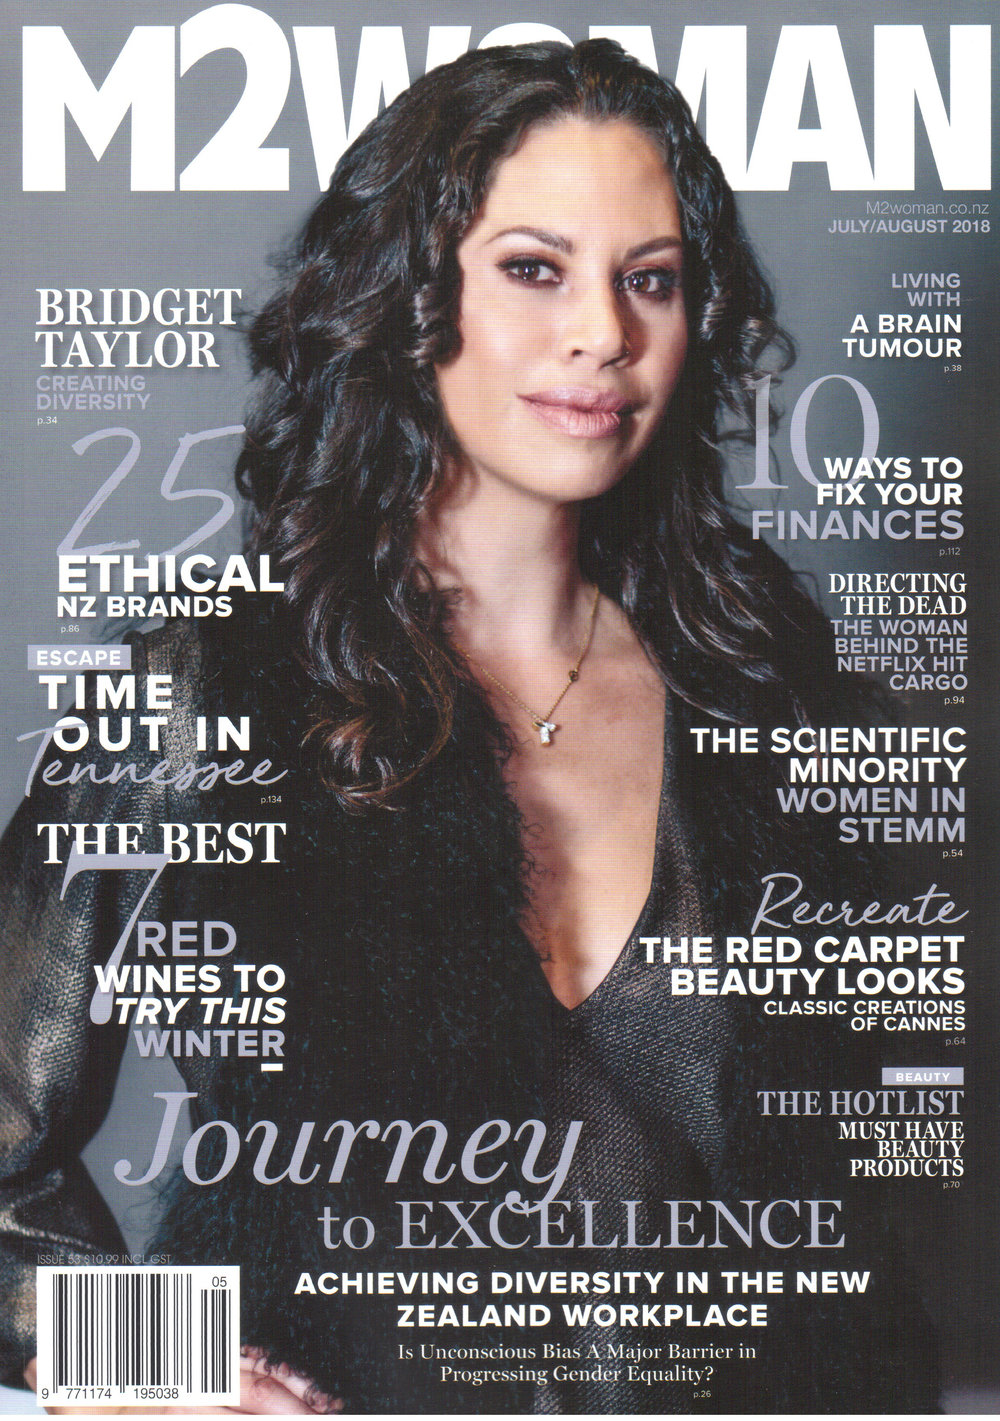 M2Woman July_August 18 cover.jpg